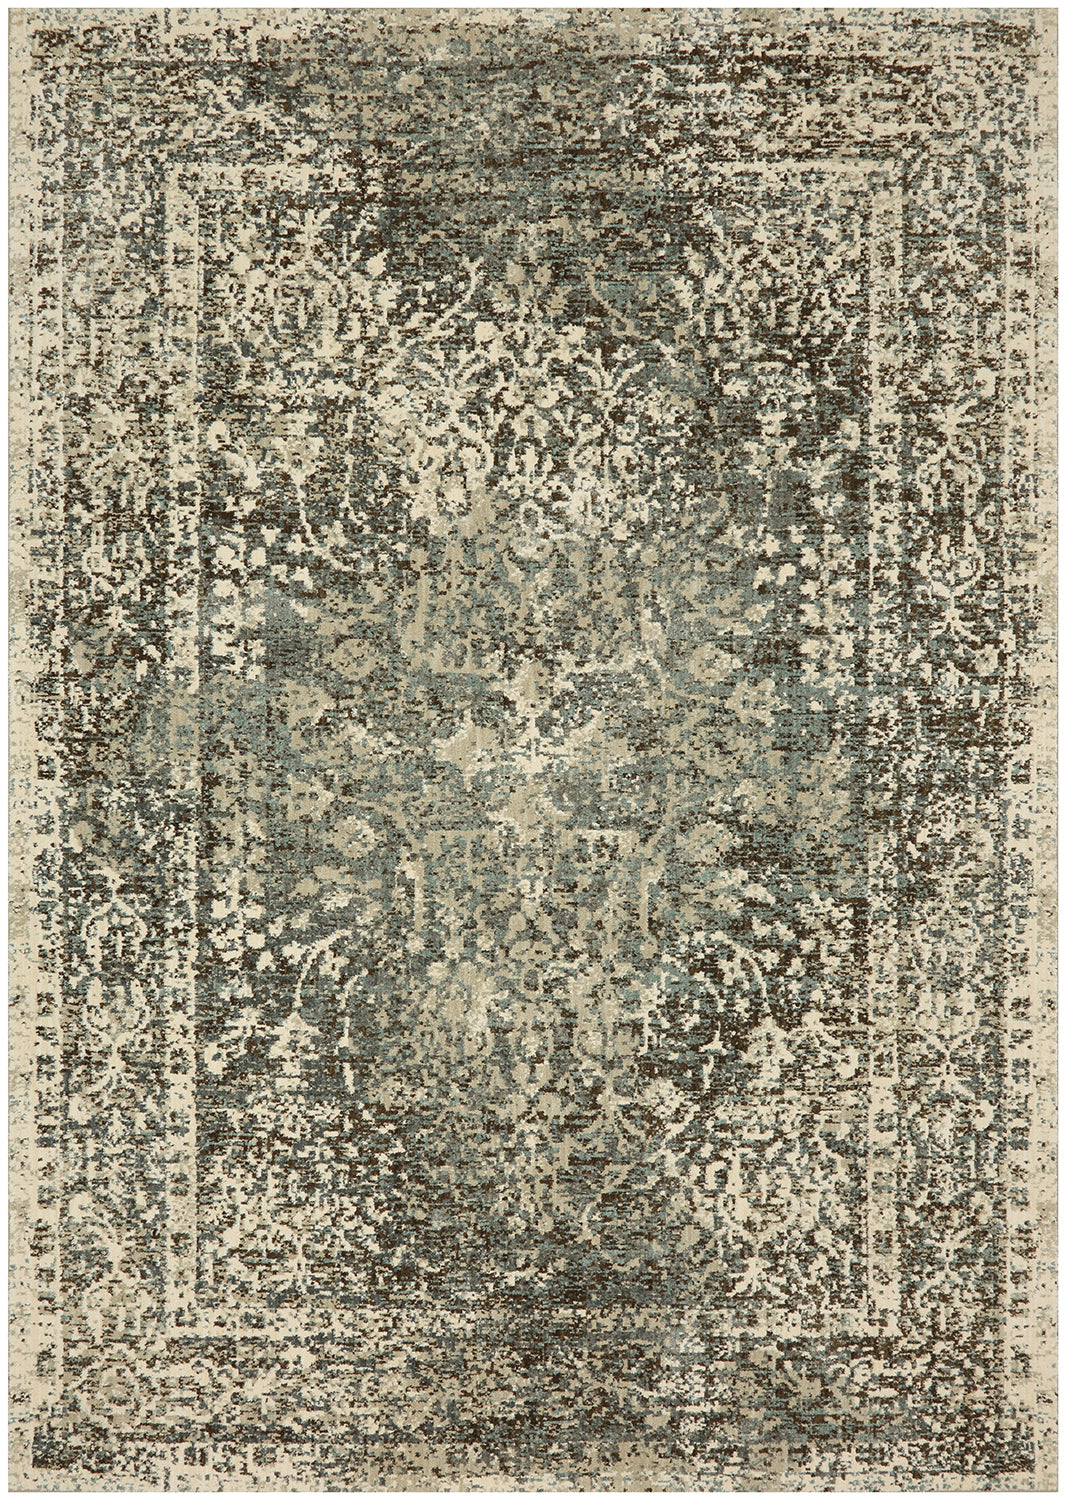 Karastan Touchstone Sanctuary Sandstone by Virginia Langley Area Rug main image